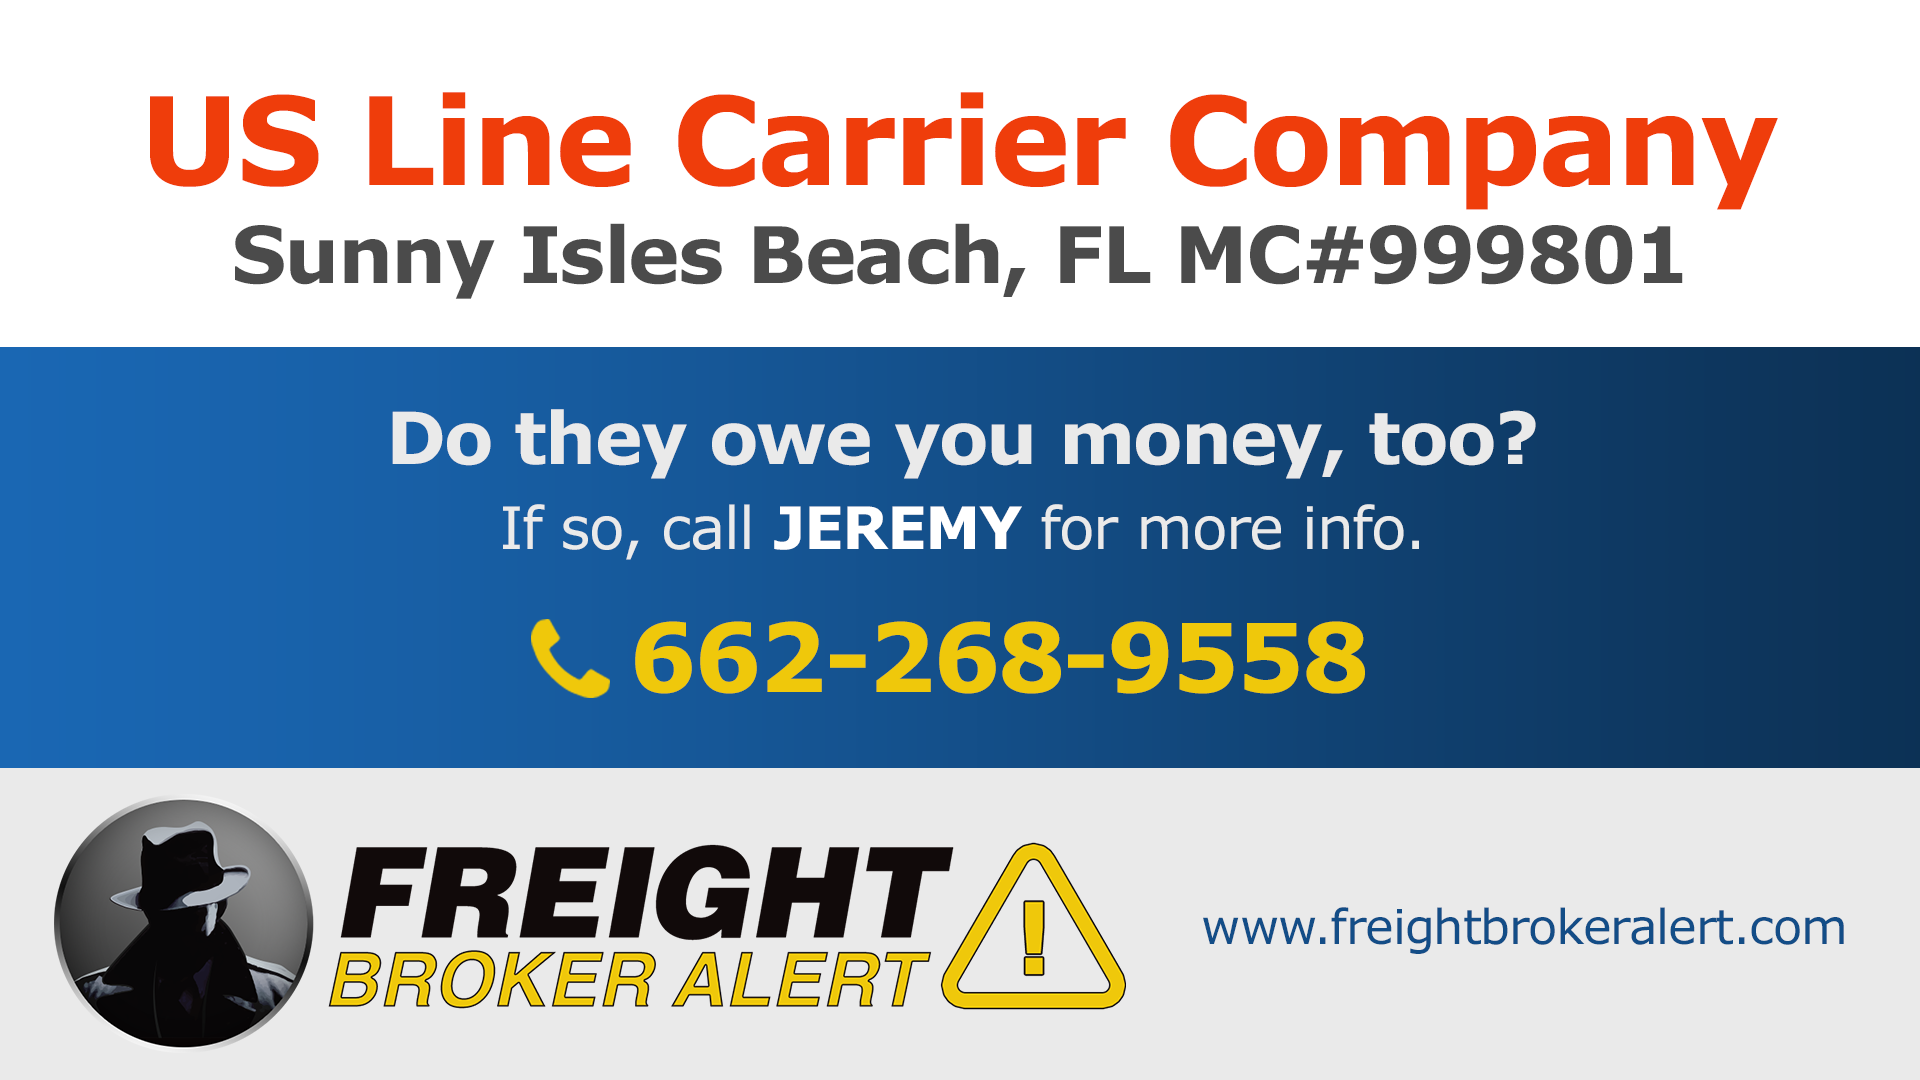 US Line Carrier Company Inc Florida